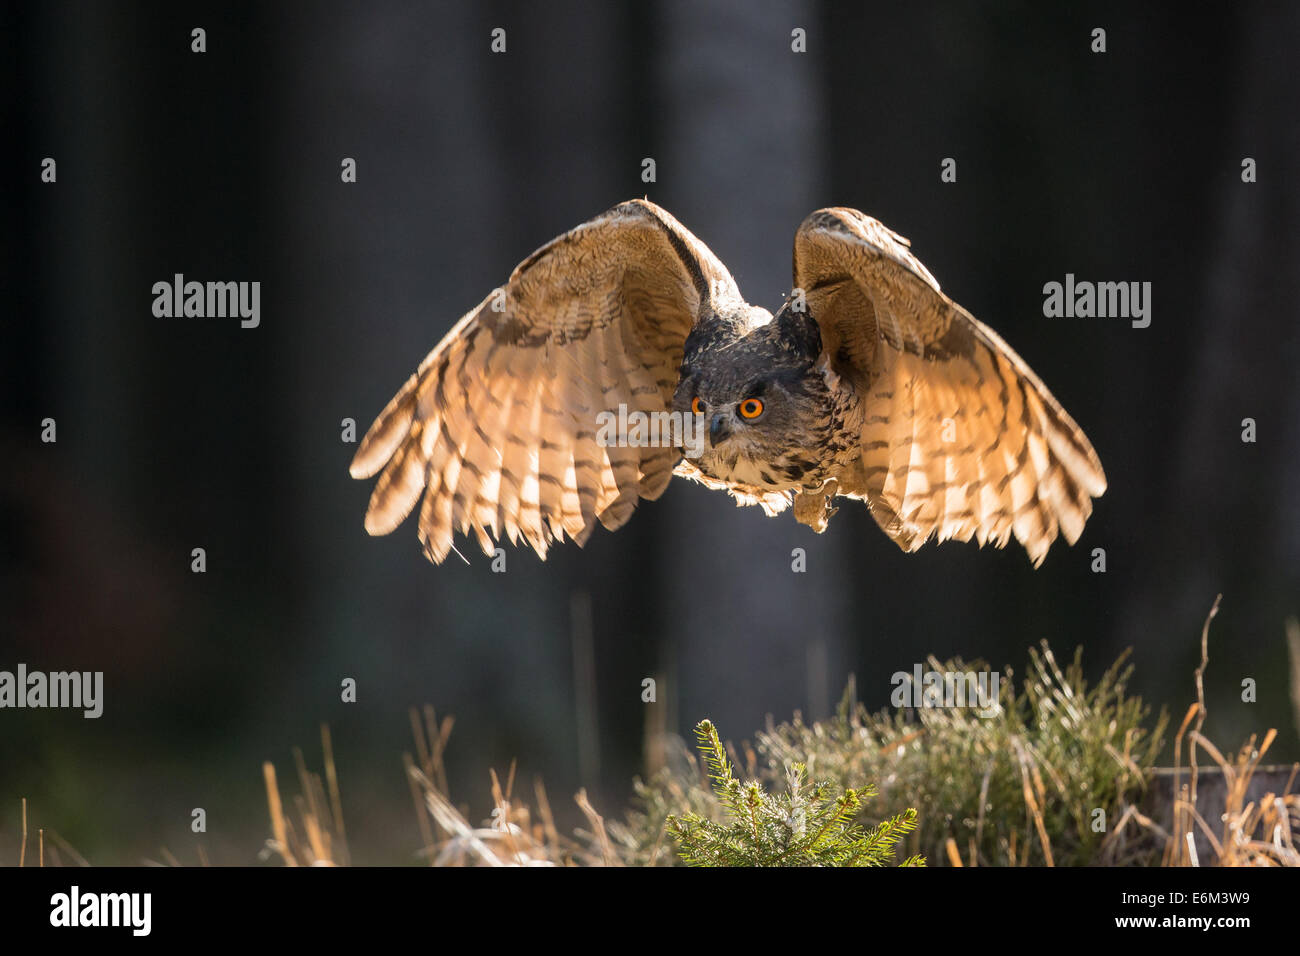 Eurasian Eagle Owl (Bubo bubo) in flight, backlit - Stock Image